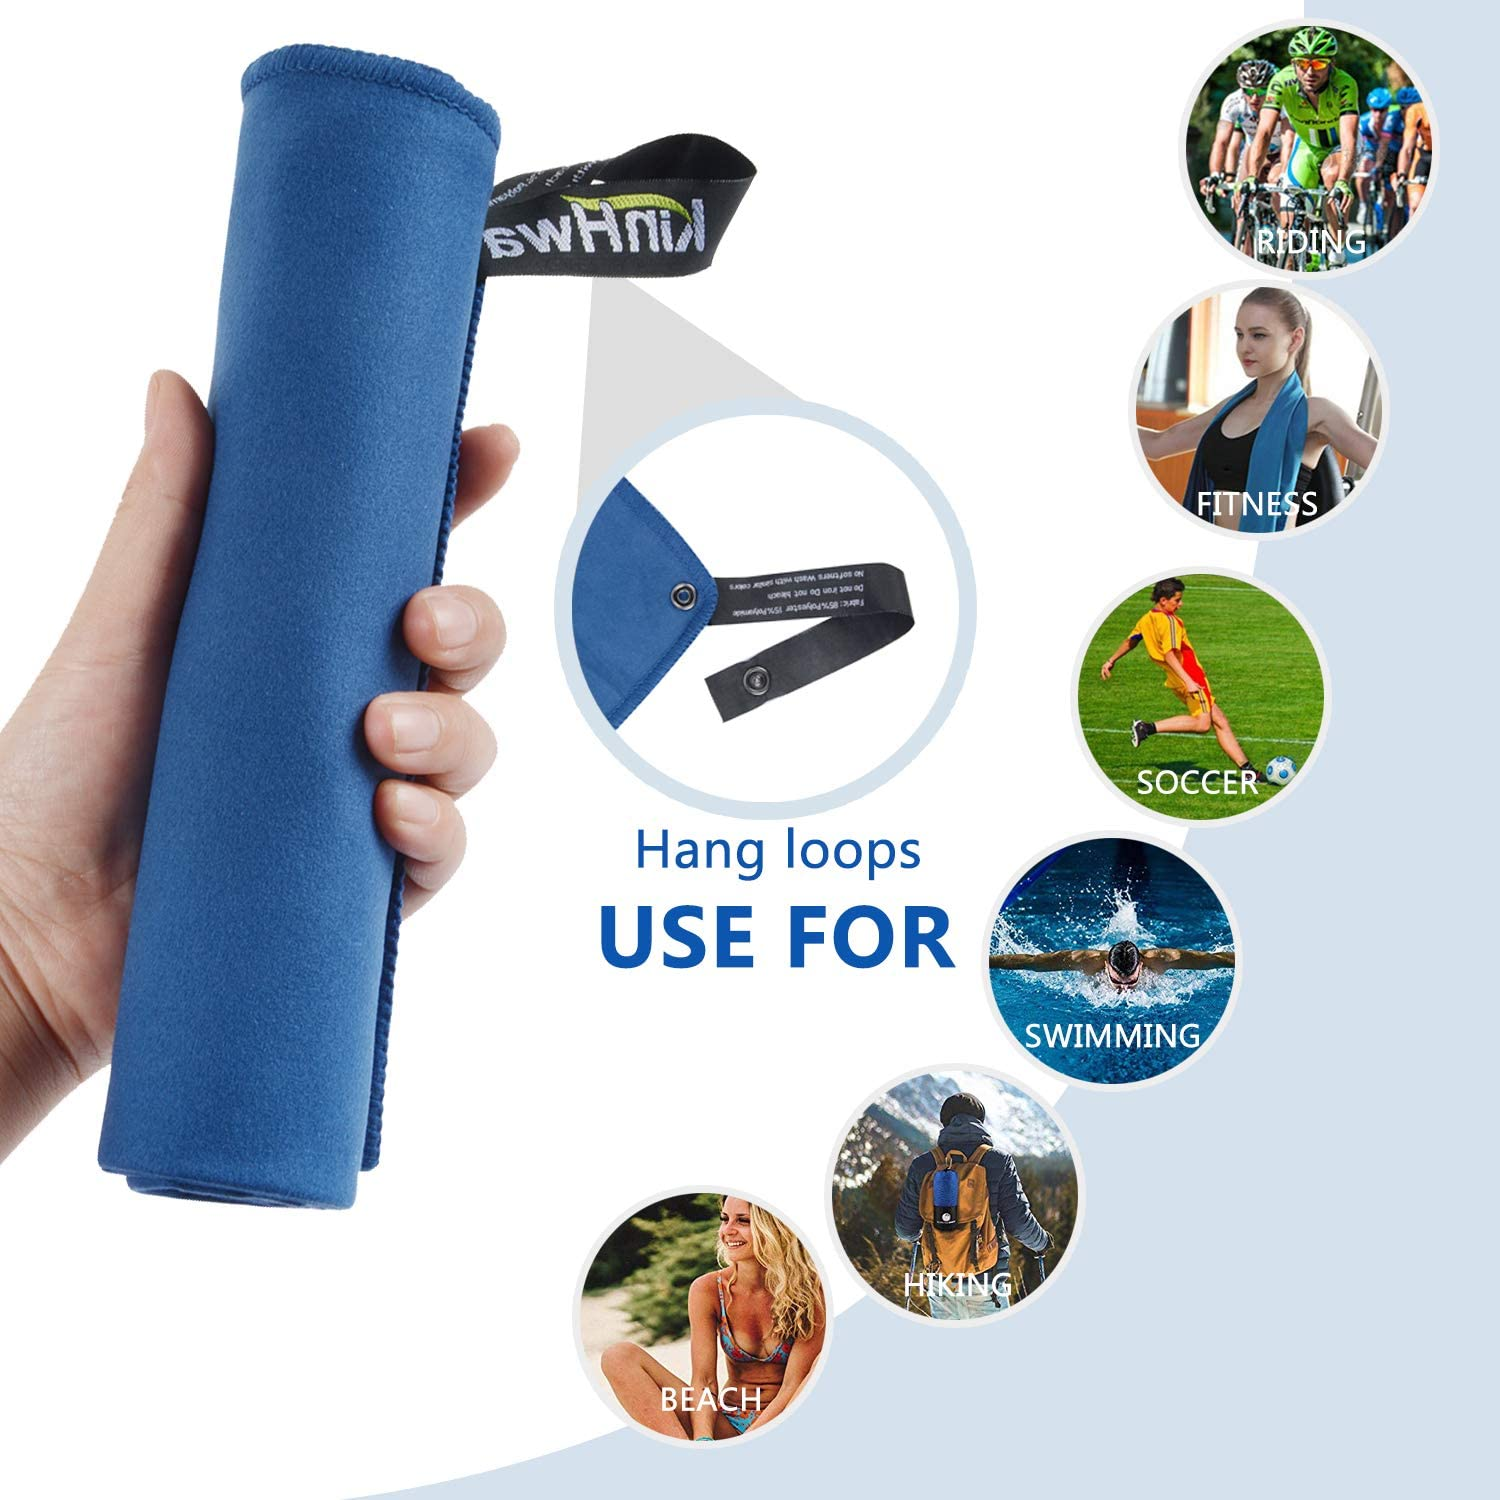 KinHwa Microfiber Workout Towel for Men Women Fast Drying Sweat Towel for Gym Lightweight Sport Fitness Exercise Towels 3 Pack 16Inch x 31Inch